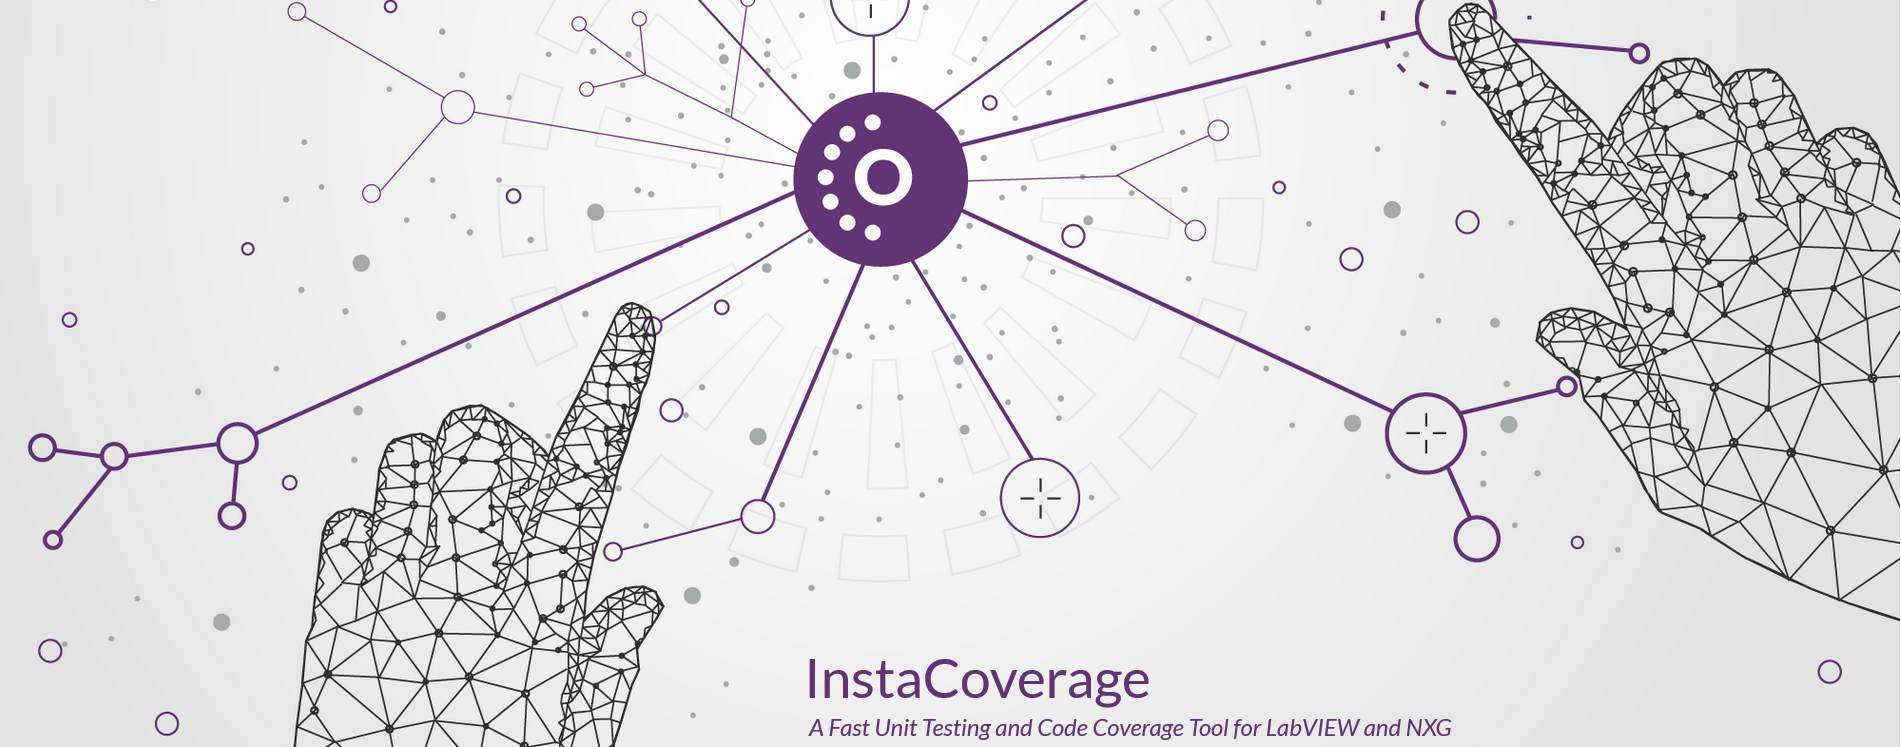 InstaCoverage 3.0.2 with new API is here